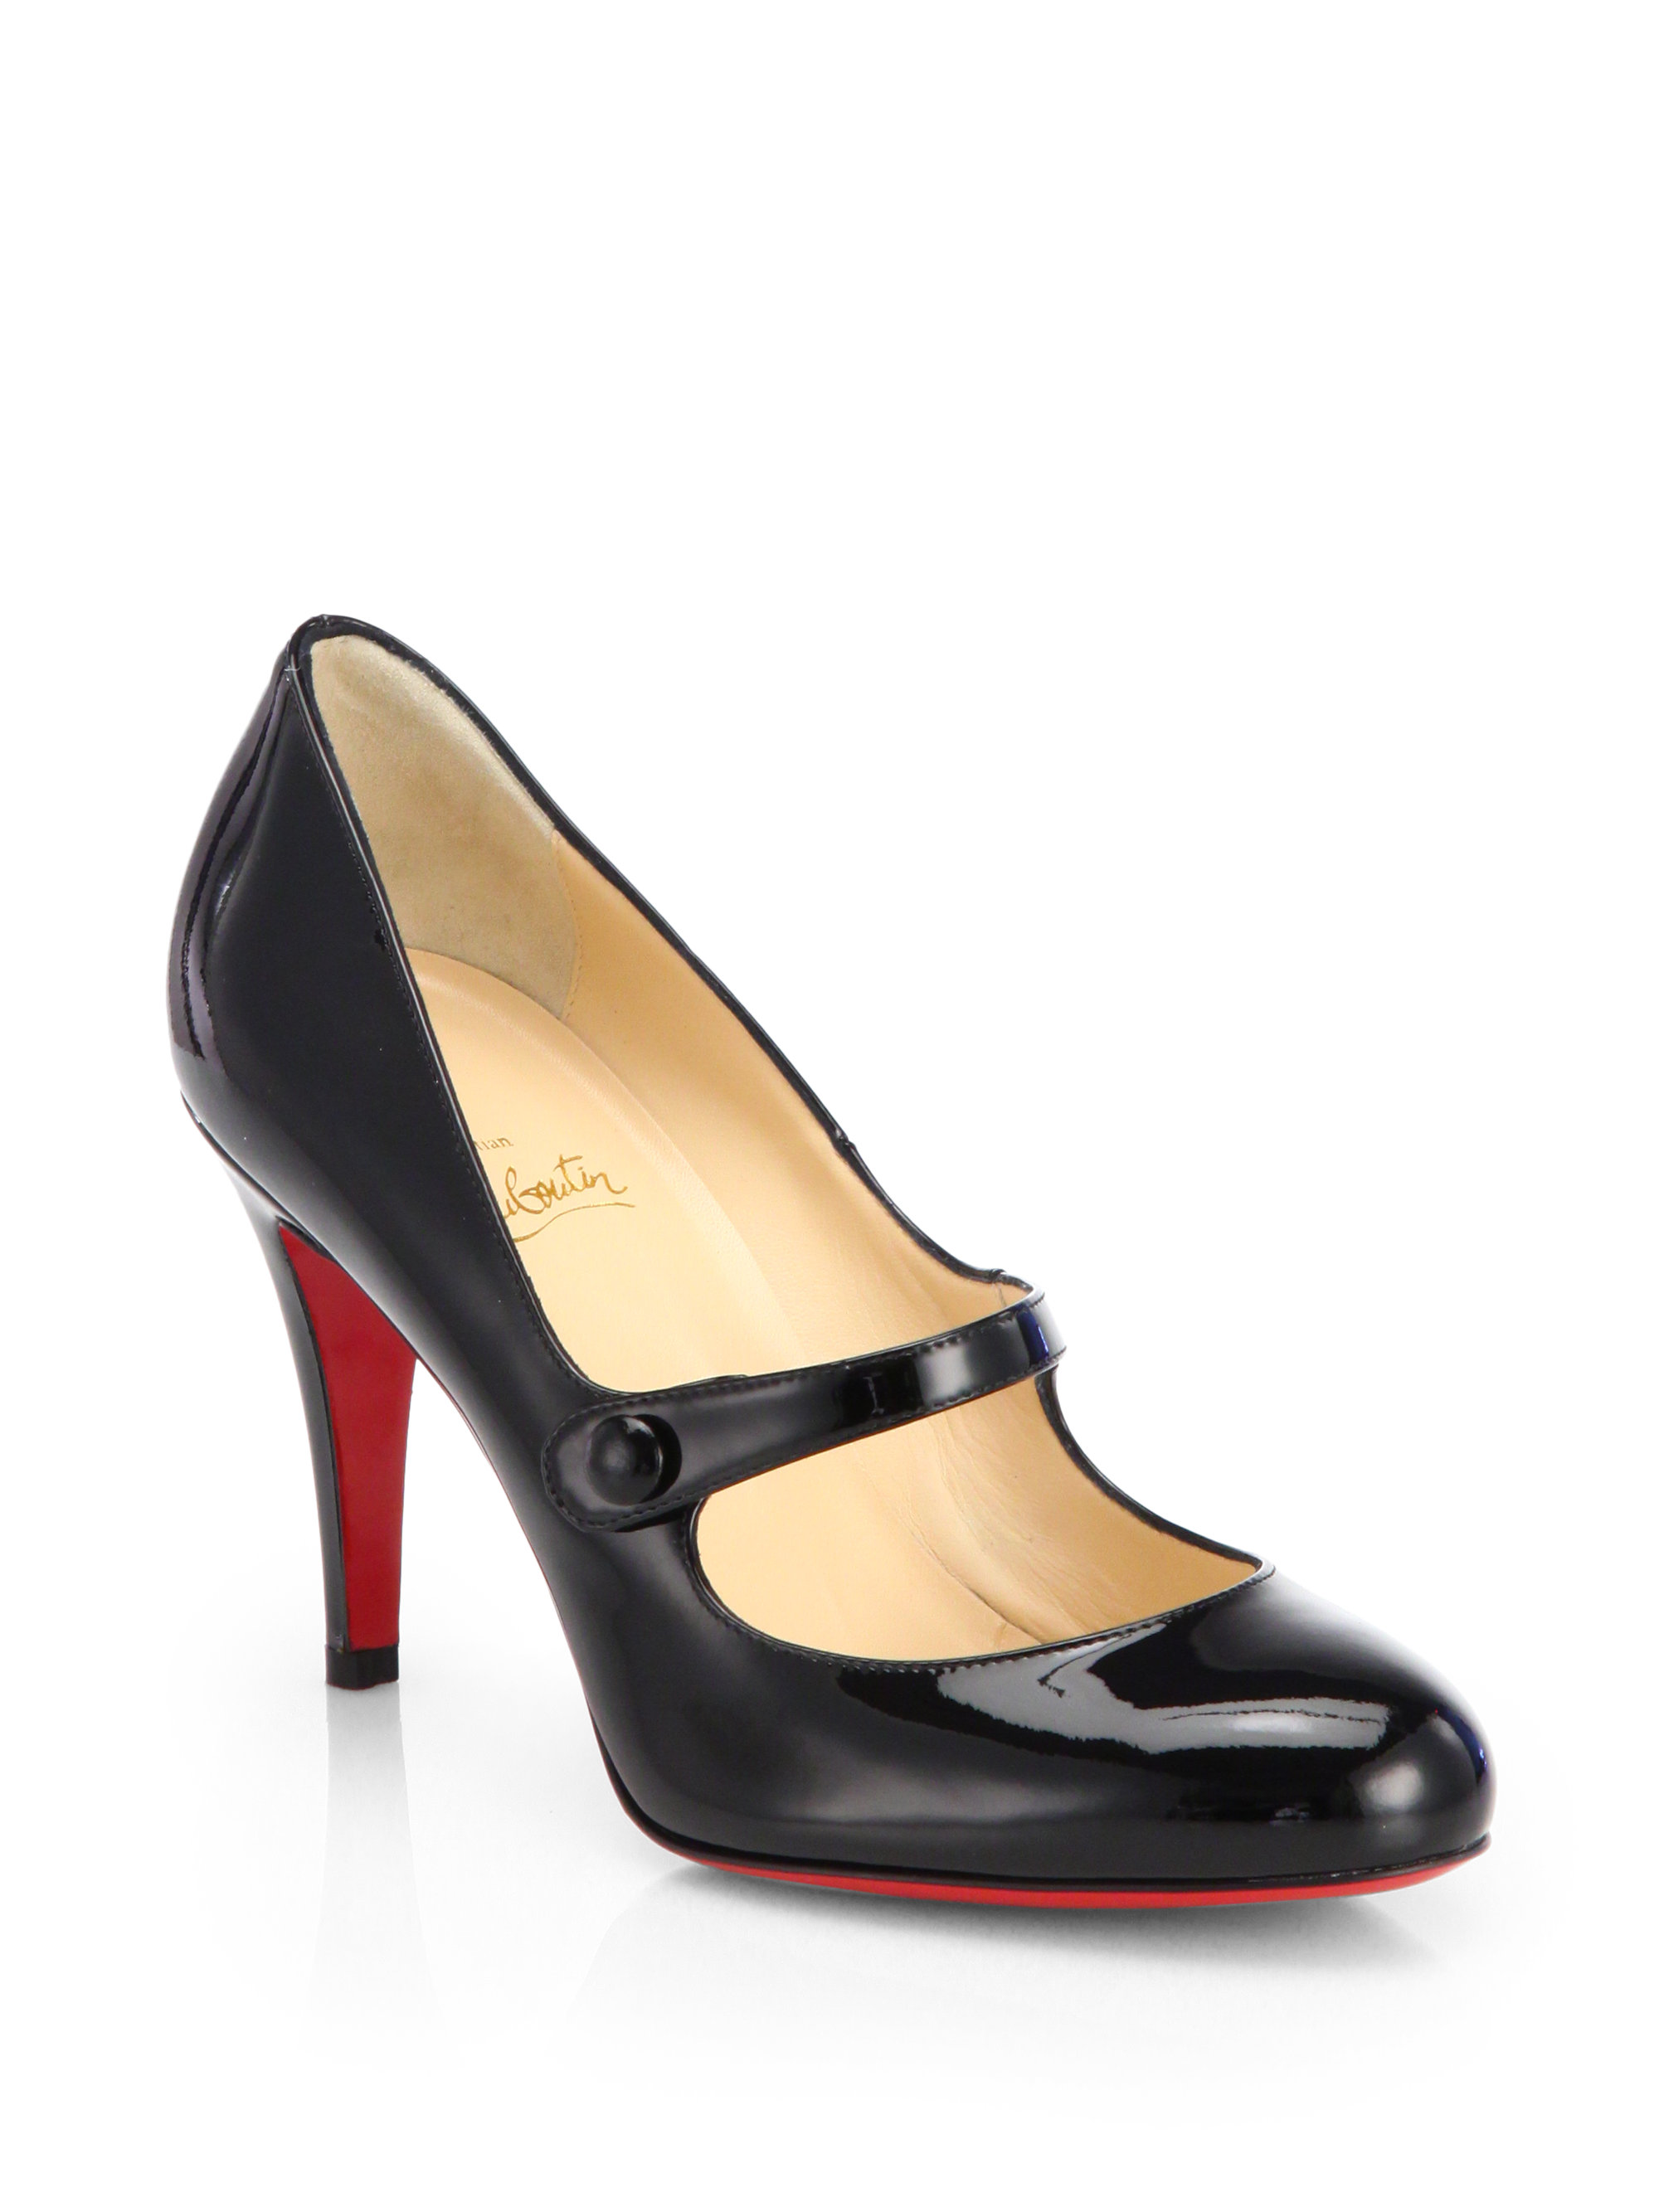 christian louboutin mens sneakers sale - christian louboutin platform Mary Jane wedges Black patent leather ...